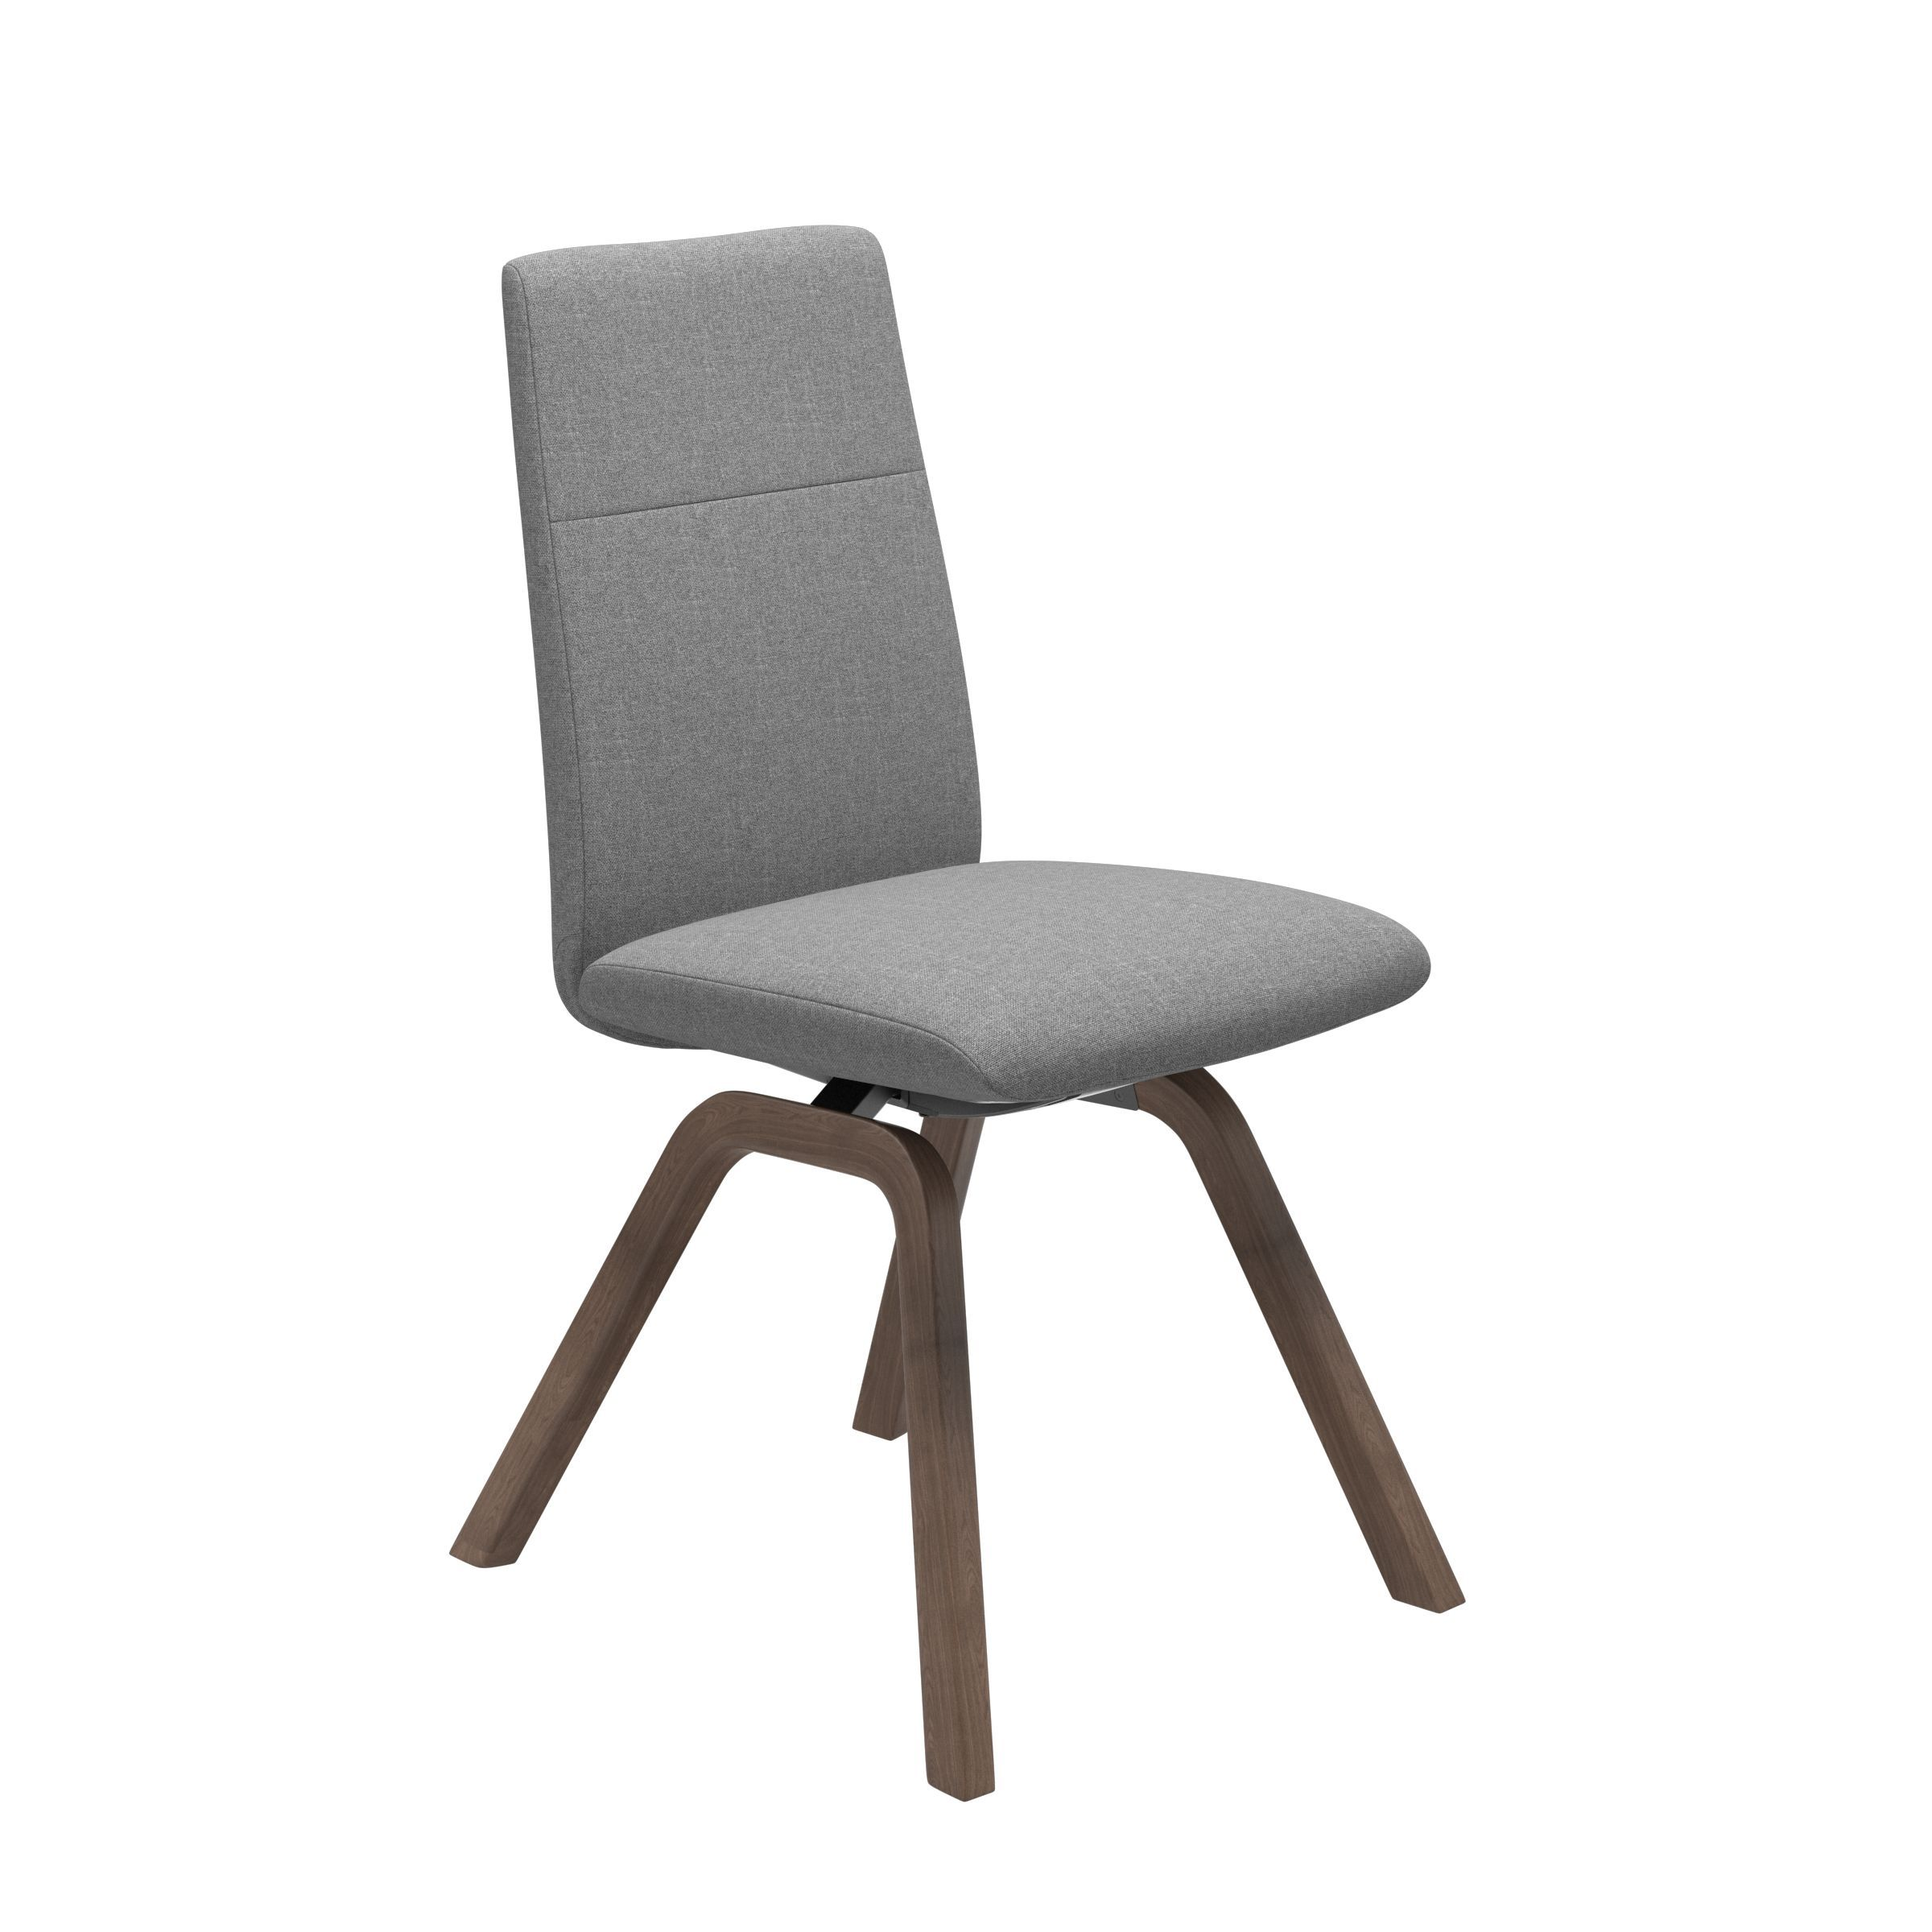 Stressless Chilli Low Back Design Your Own Dining Chair